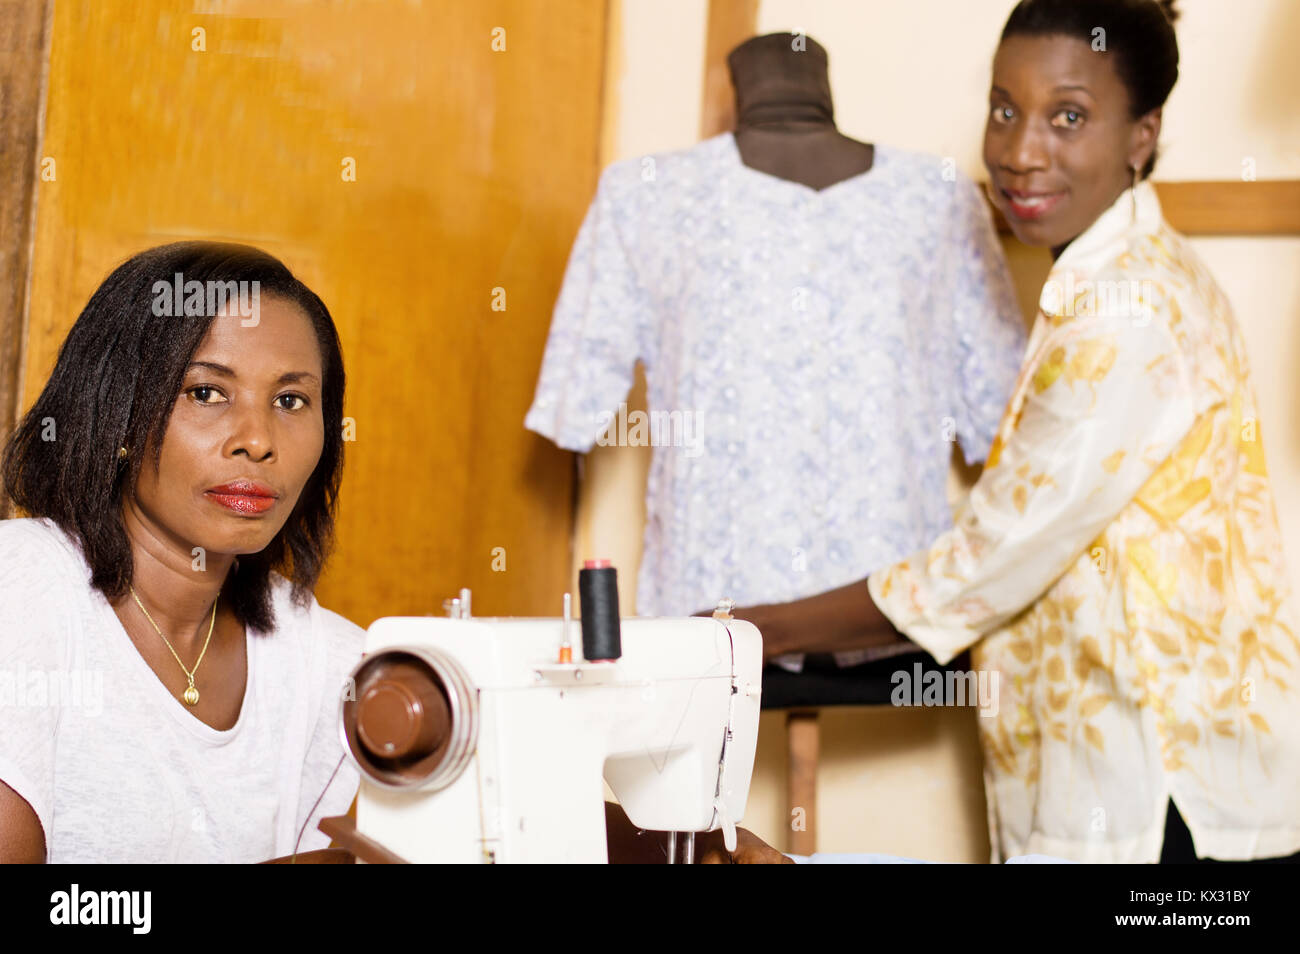 Young seamstress in front of her sewing machine while her colleague dresses the mannequin. - Stock Image